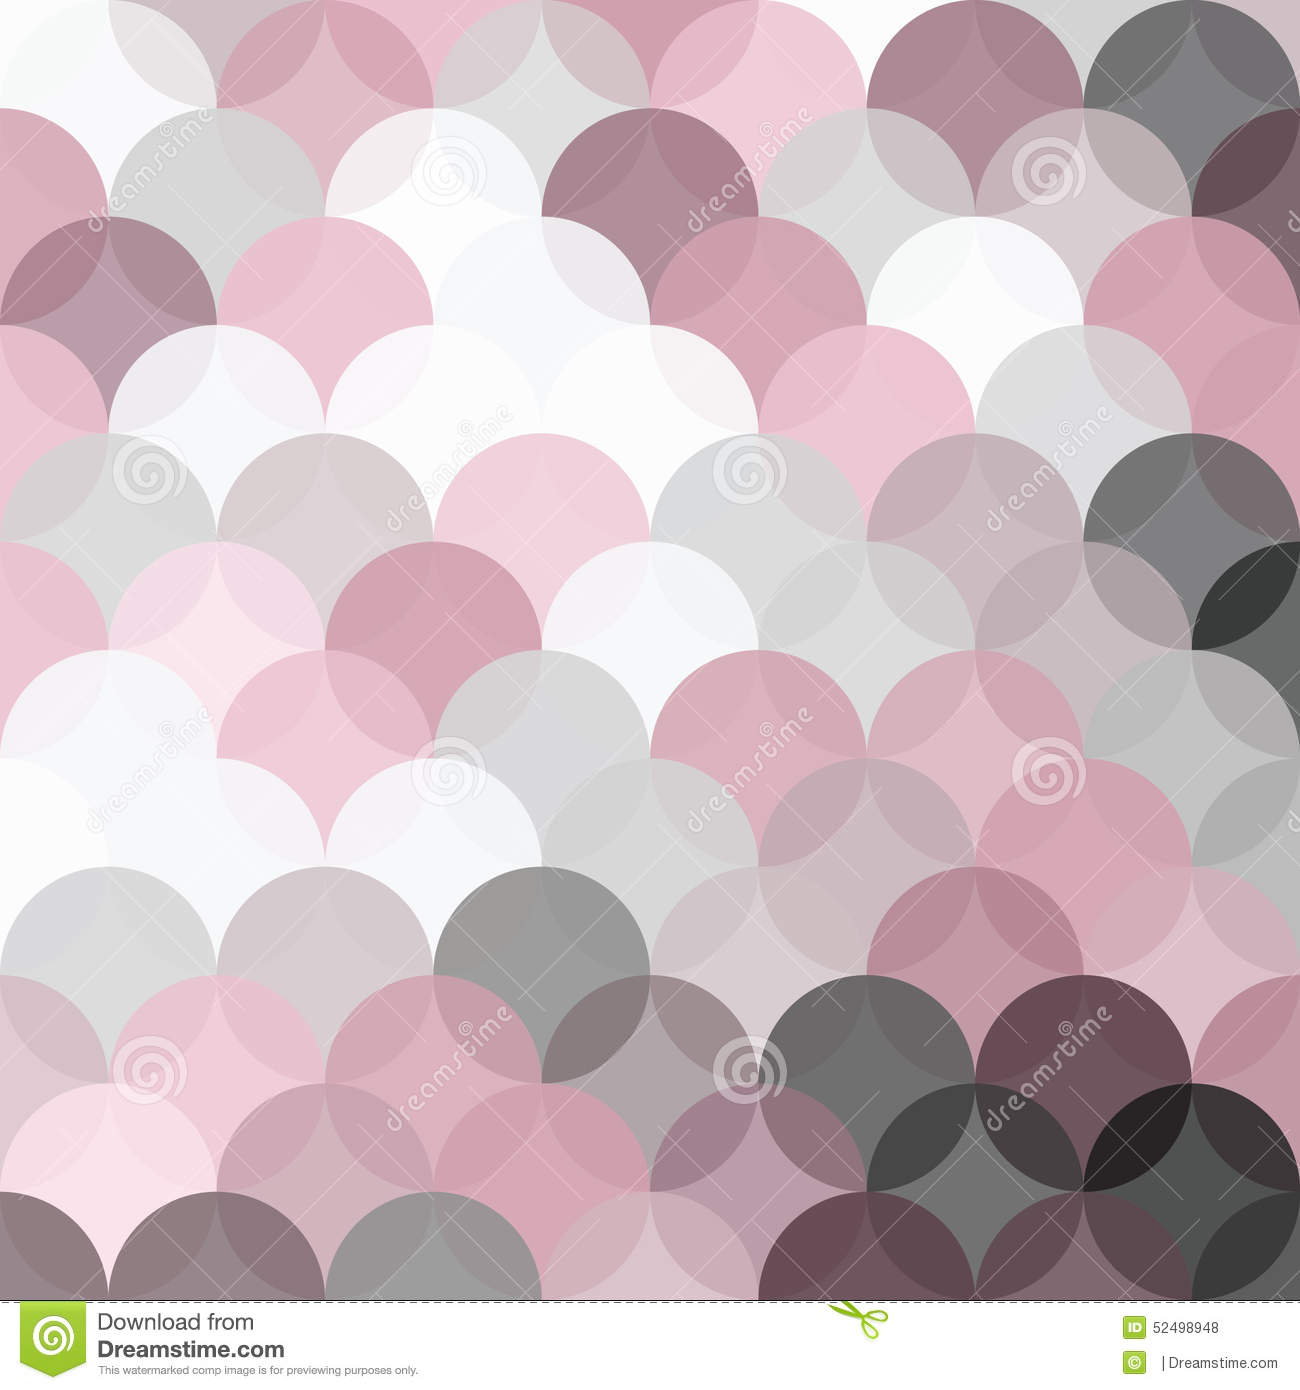 Grey And Pink Background Circles Pattern With Transparent Pink And Grey